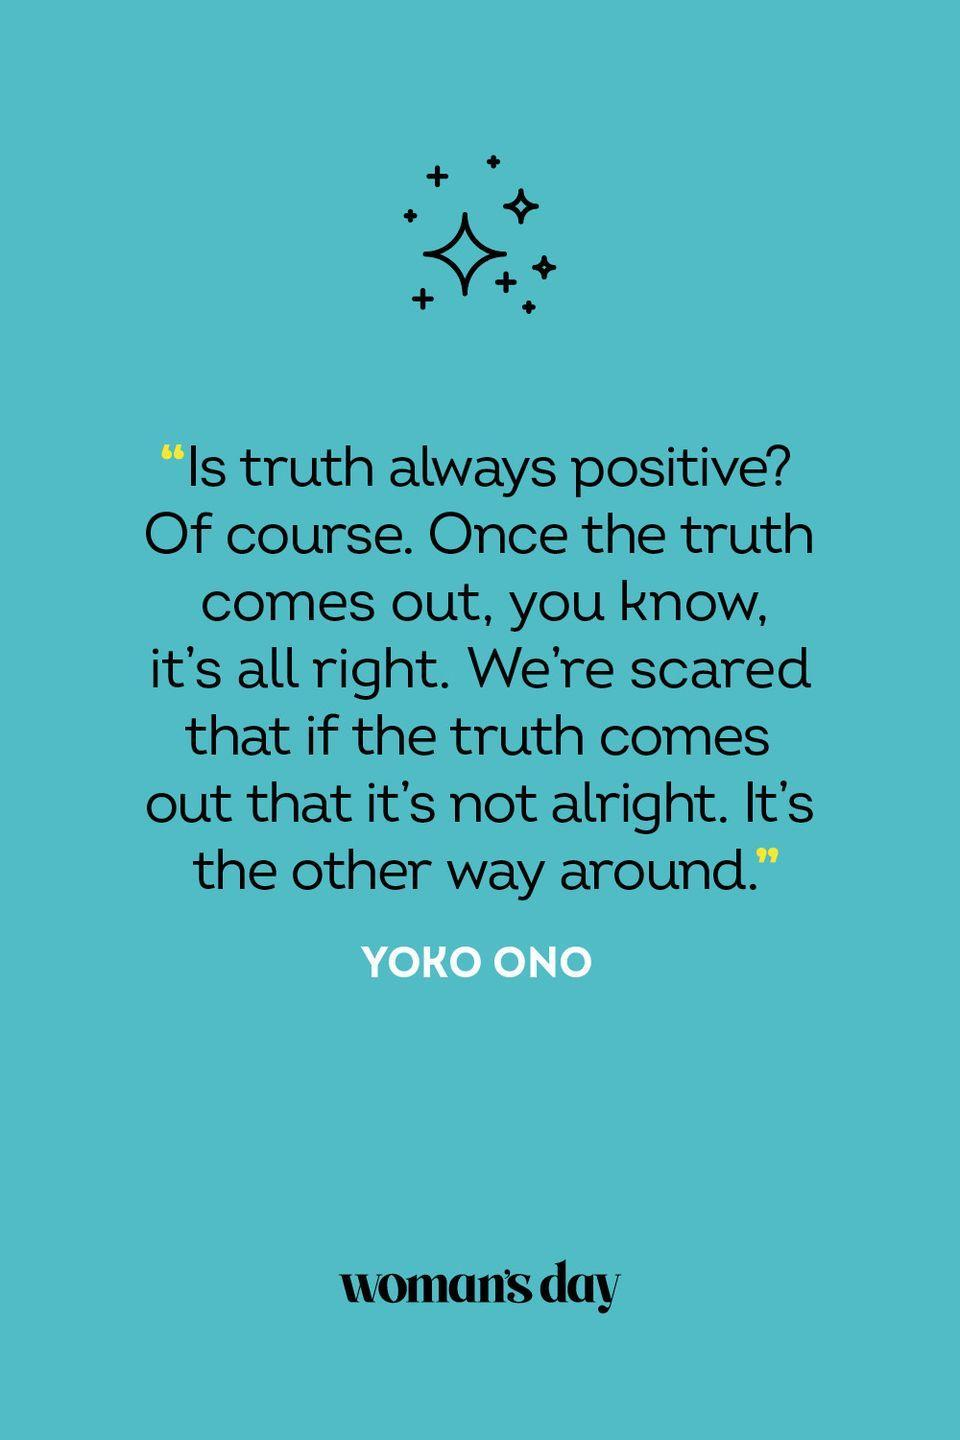 <p>Is truth always positive? Of course. Once the truth comes out, you know, it's all right. We're scared that if the truth comes out that it's not alright. It's the other way around.</p>